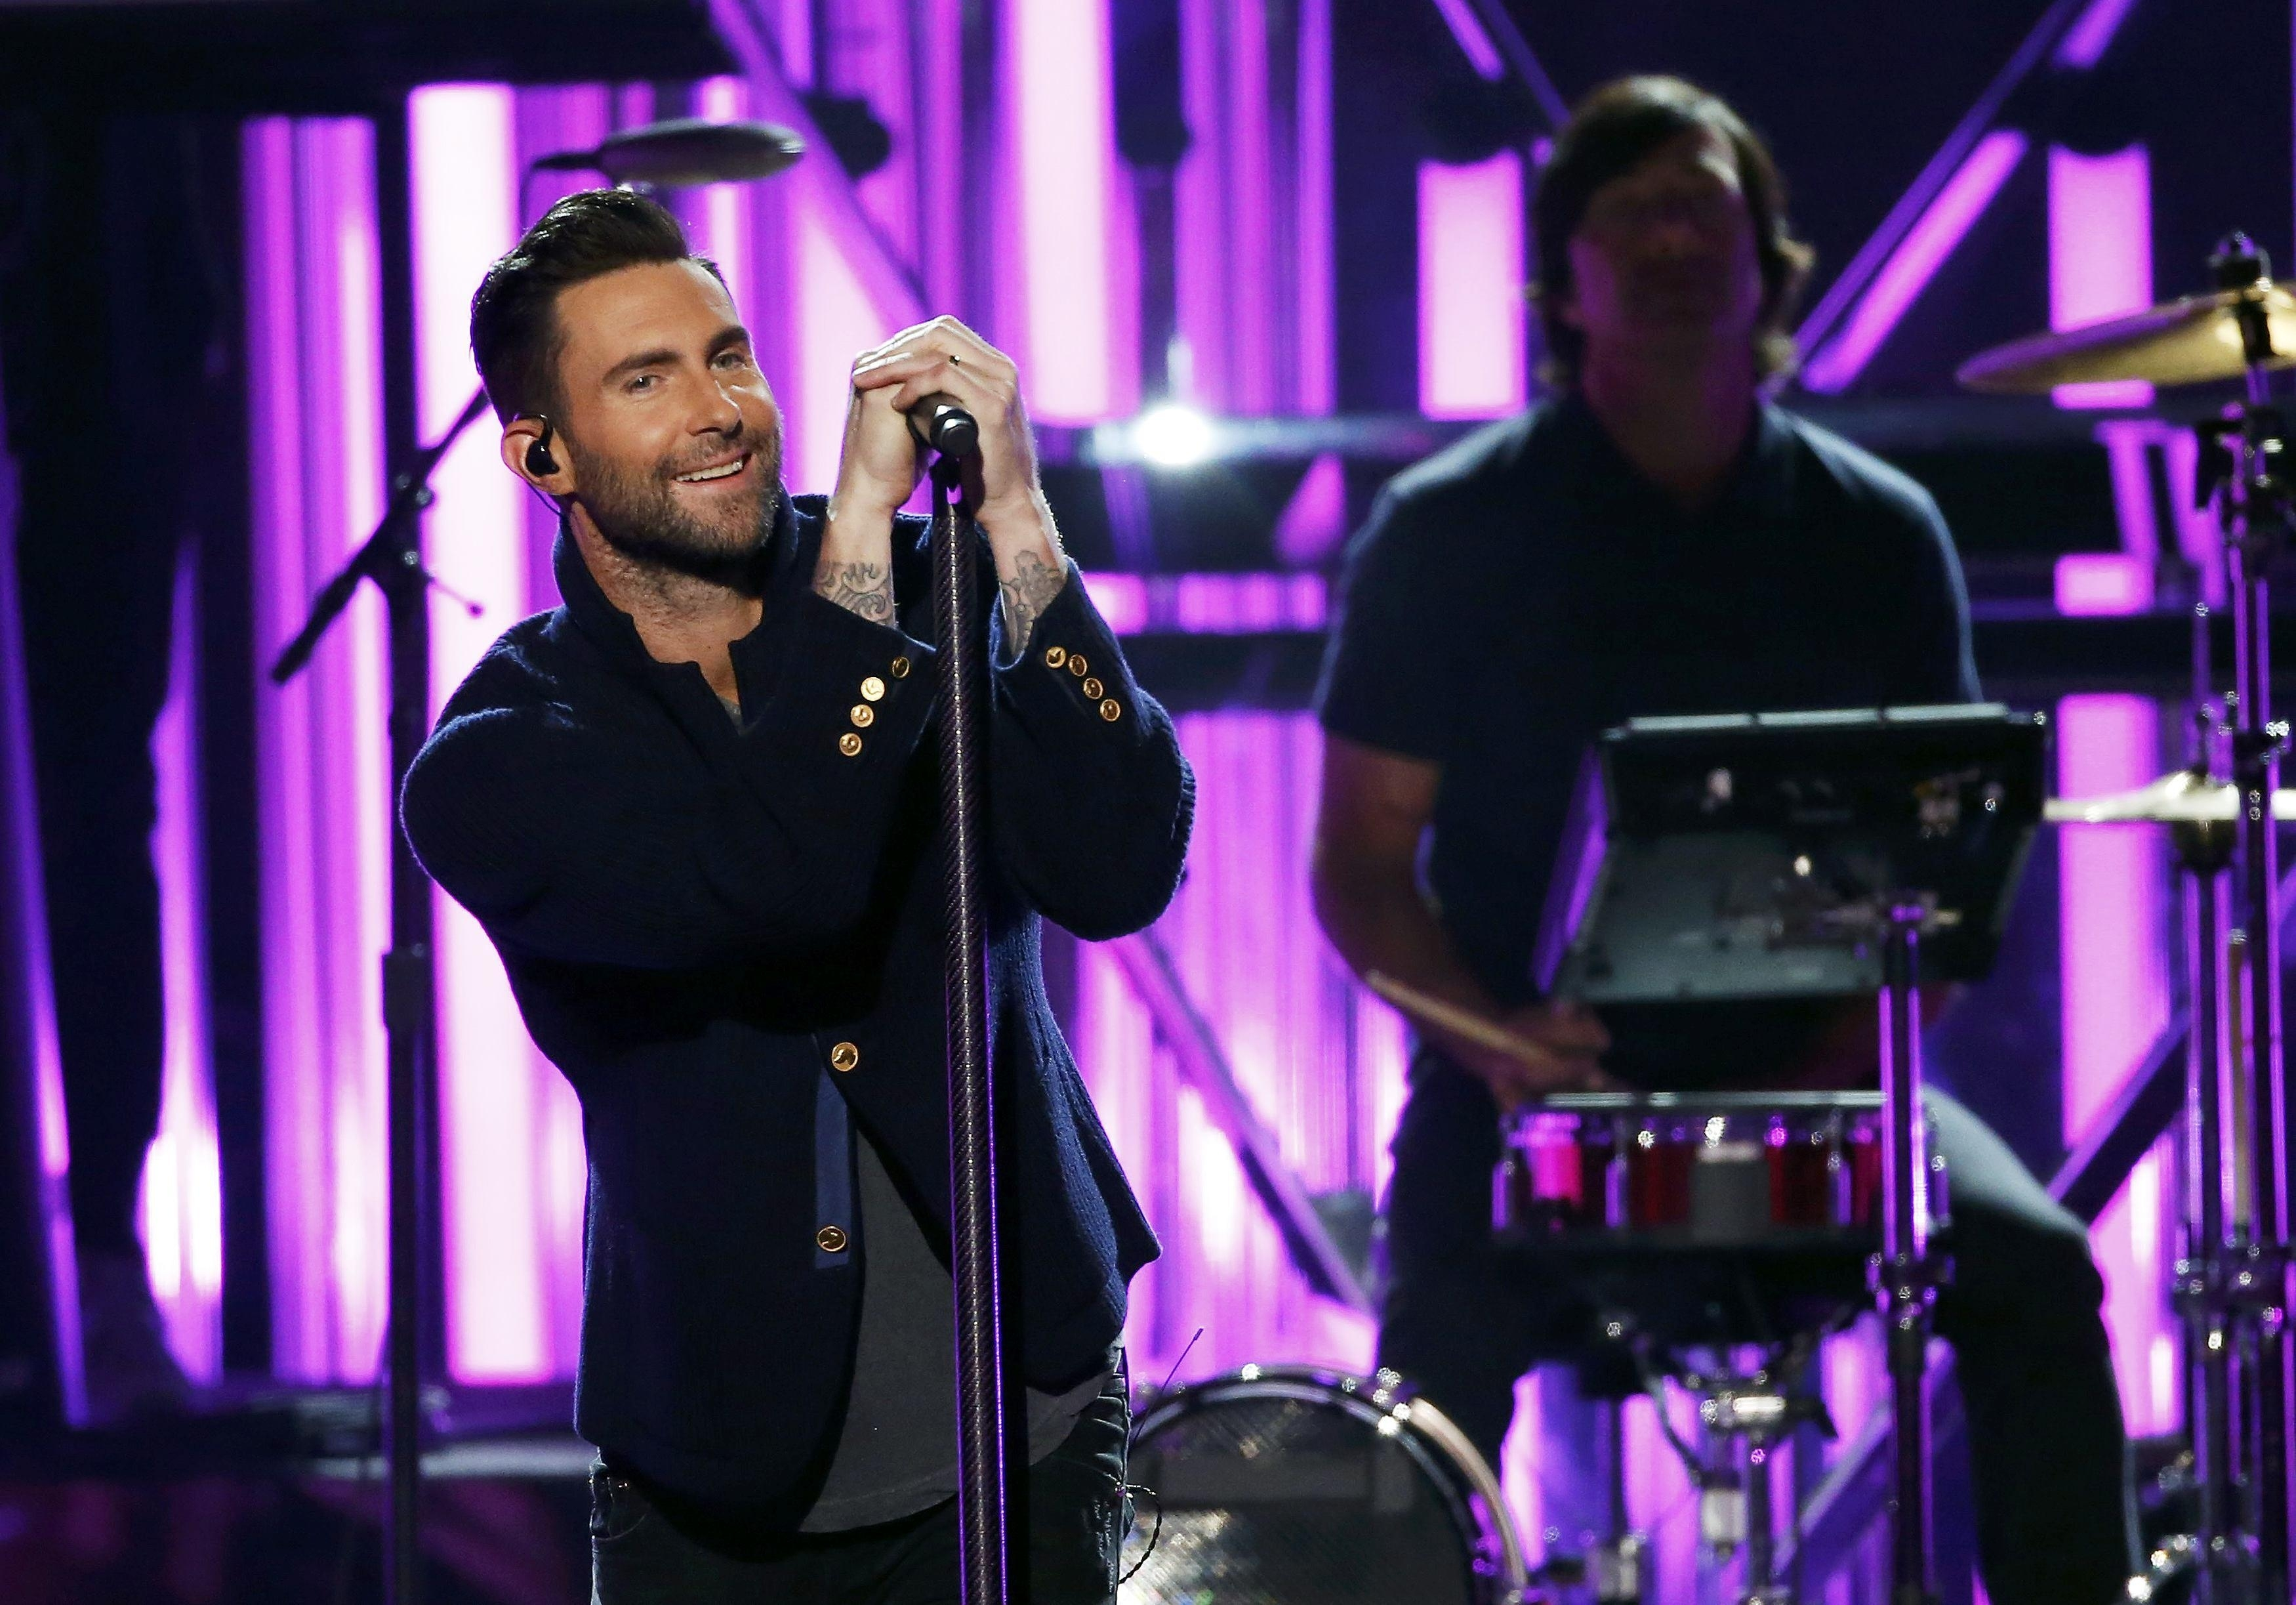 Maroon 5 Is A Frontrunner To Play Super Bowl Liii Halftime intended for Maroon 5 Super Bowl Liii